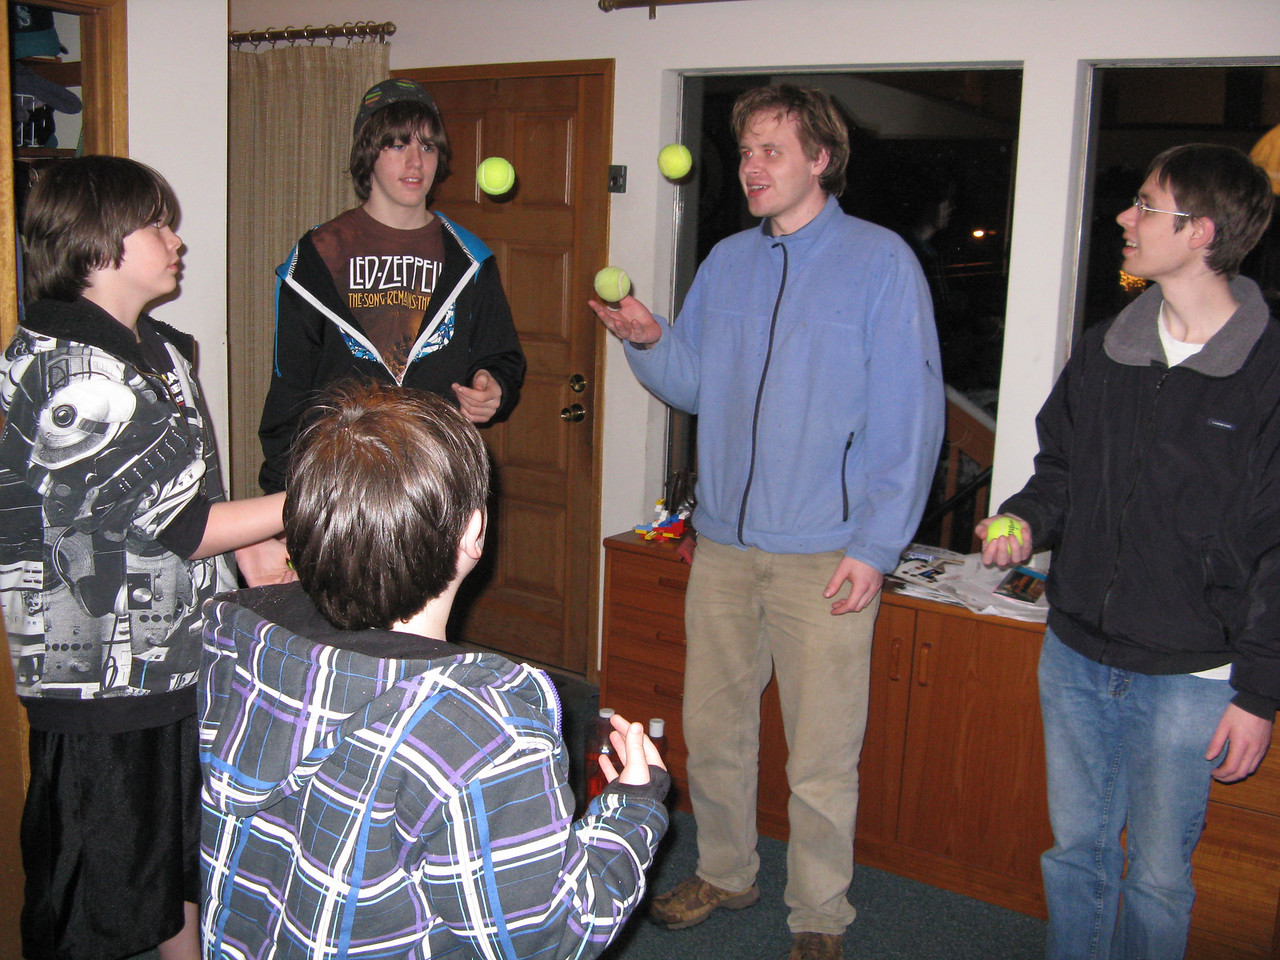 Yep, Nathan is demonstrating his juggling ability.  (L to R) Corey, Derek, Nathan, Kevin and Riley (with his back to the camera).